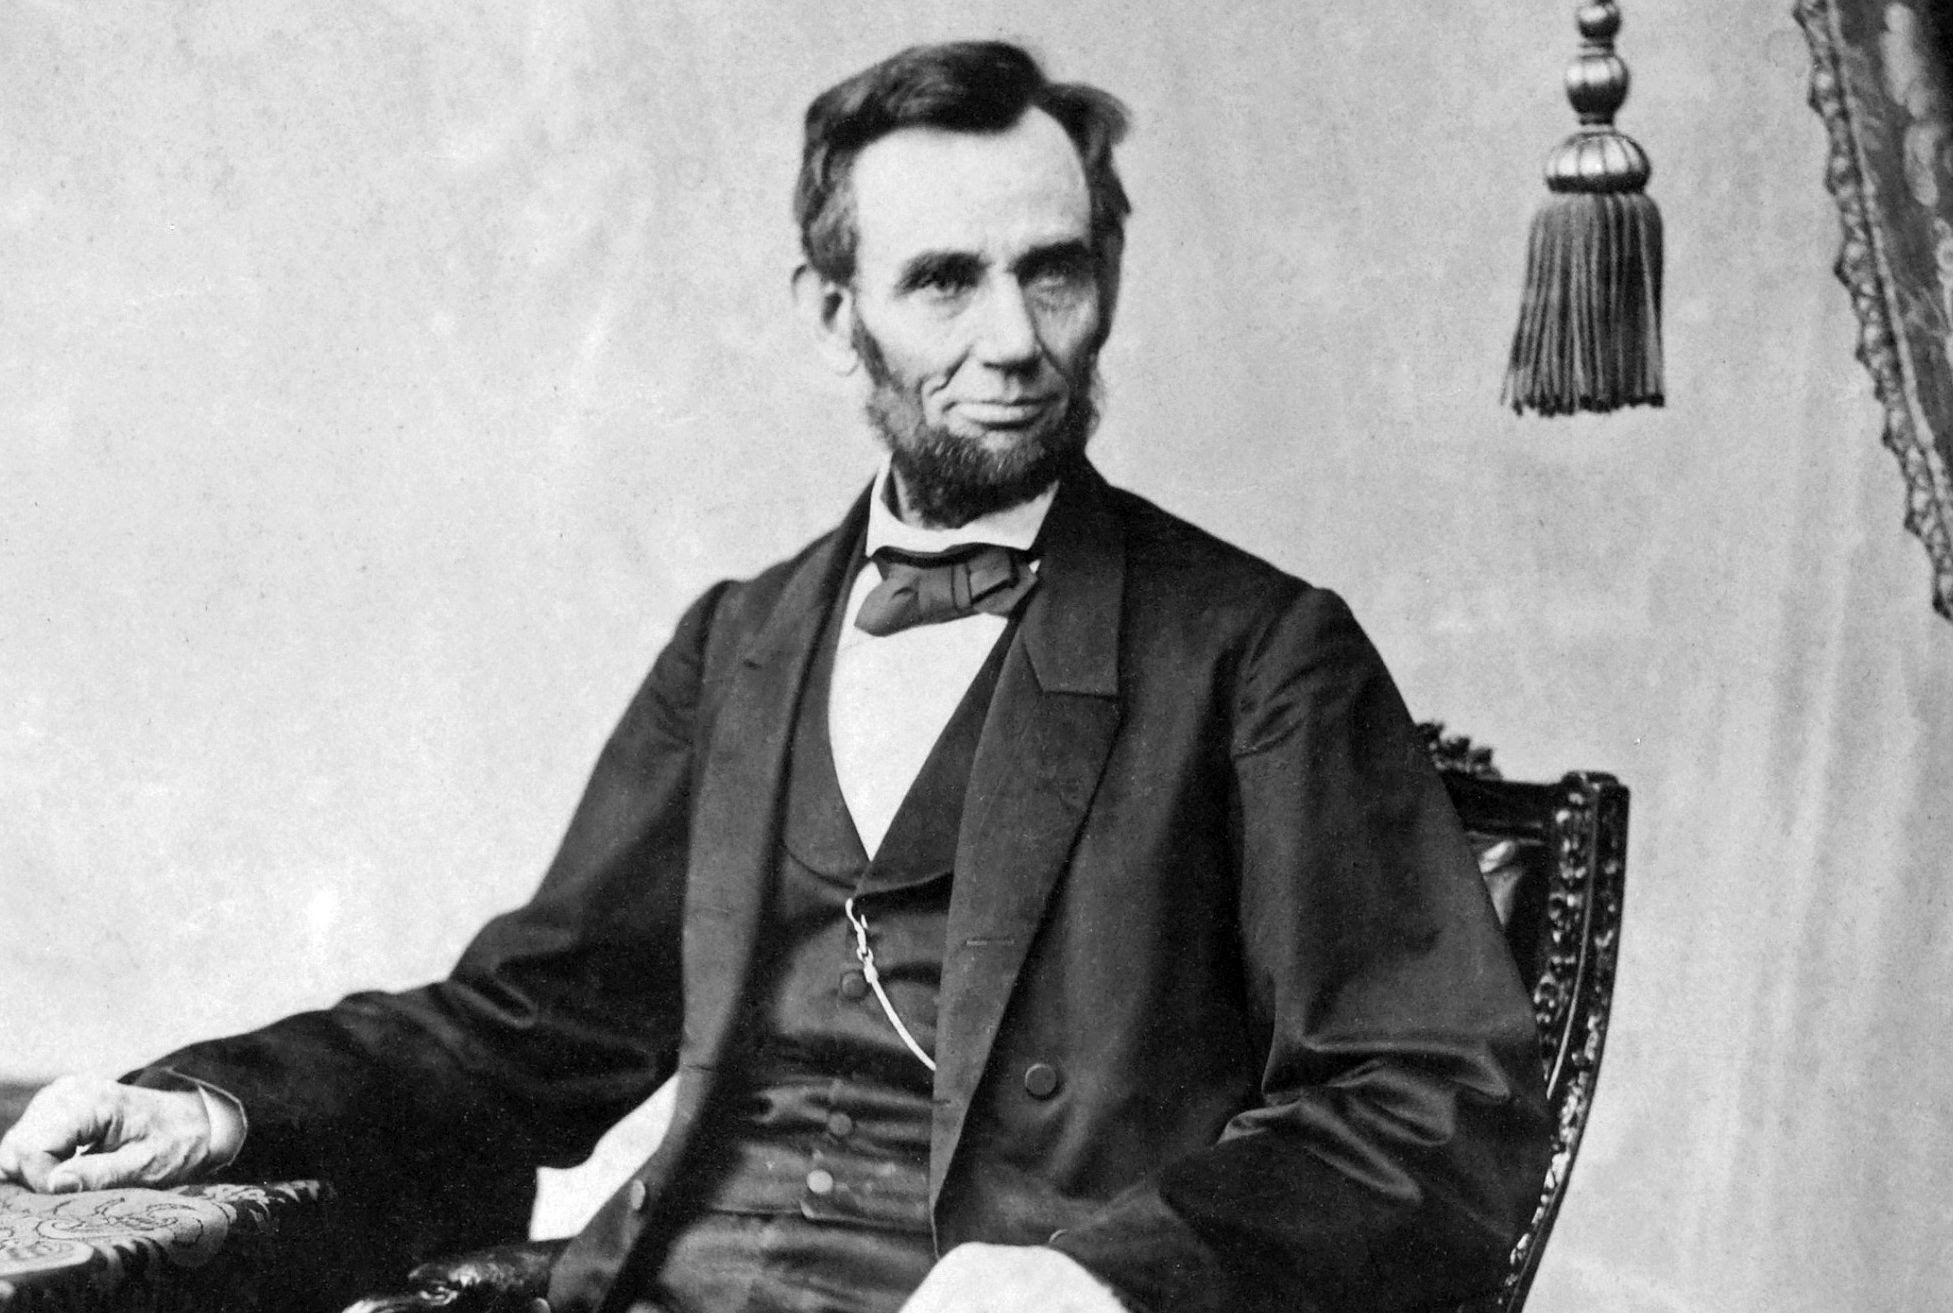 an analysis of the affects of the civil war and the conclusions by the president lincoln The american civil war was the largest and most destructive conflict in the western world between the end of the napoleonic wars in 1815 and the onset of world war i.